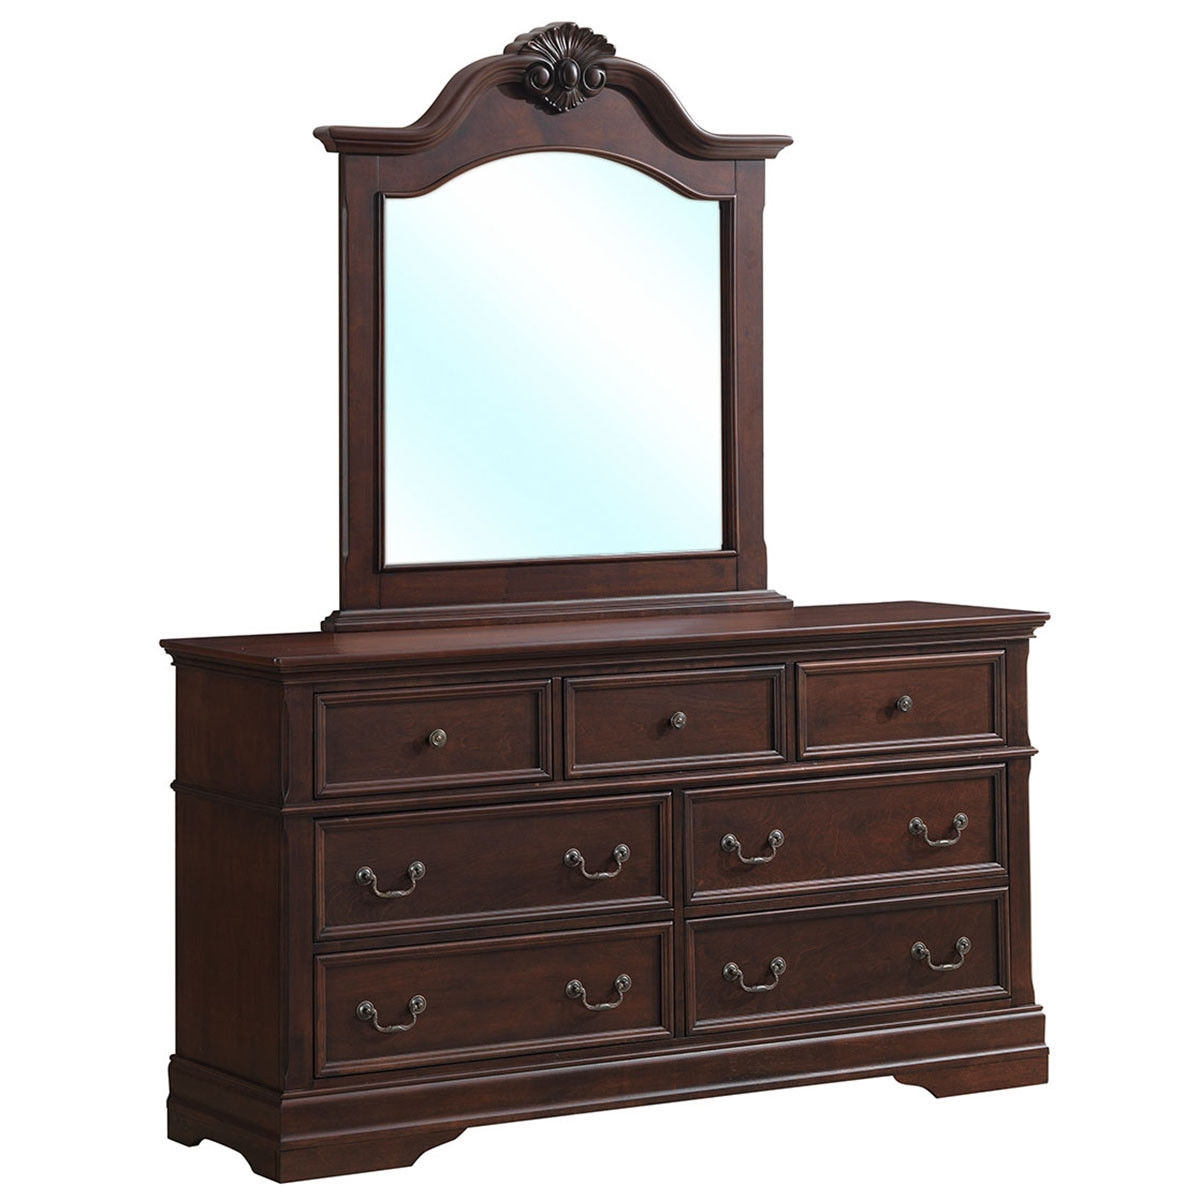 7 Drawers Luxury Chest Dresser Mirror Storage Set